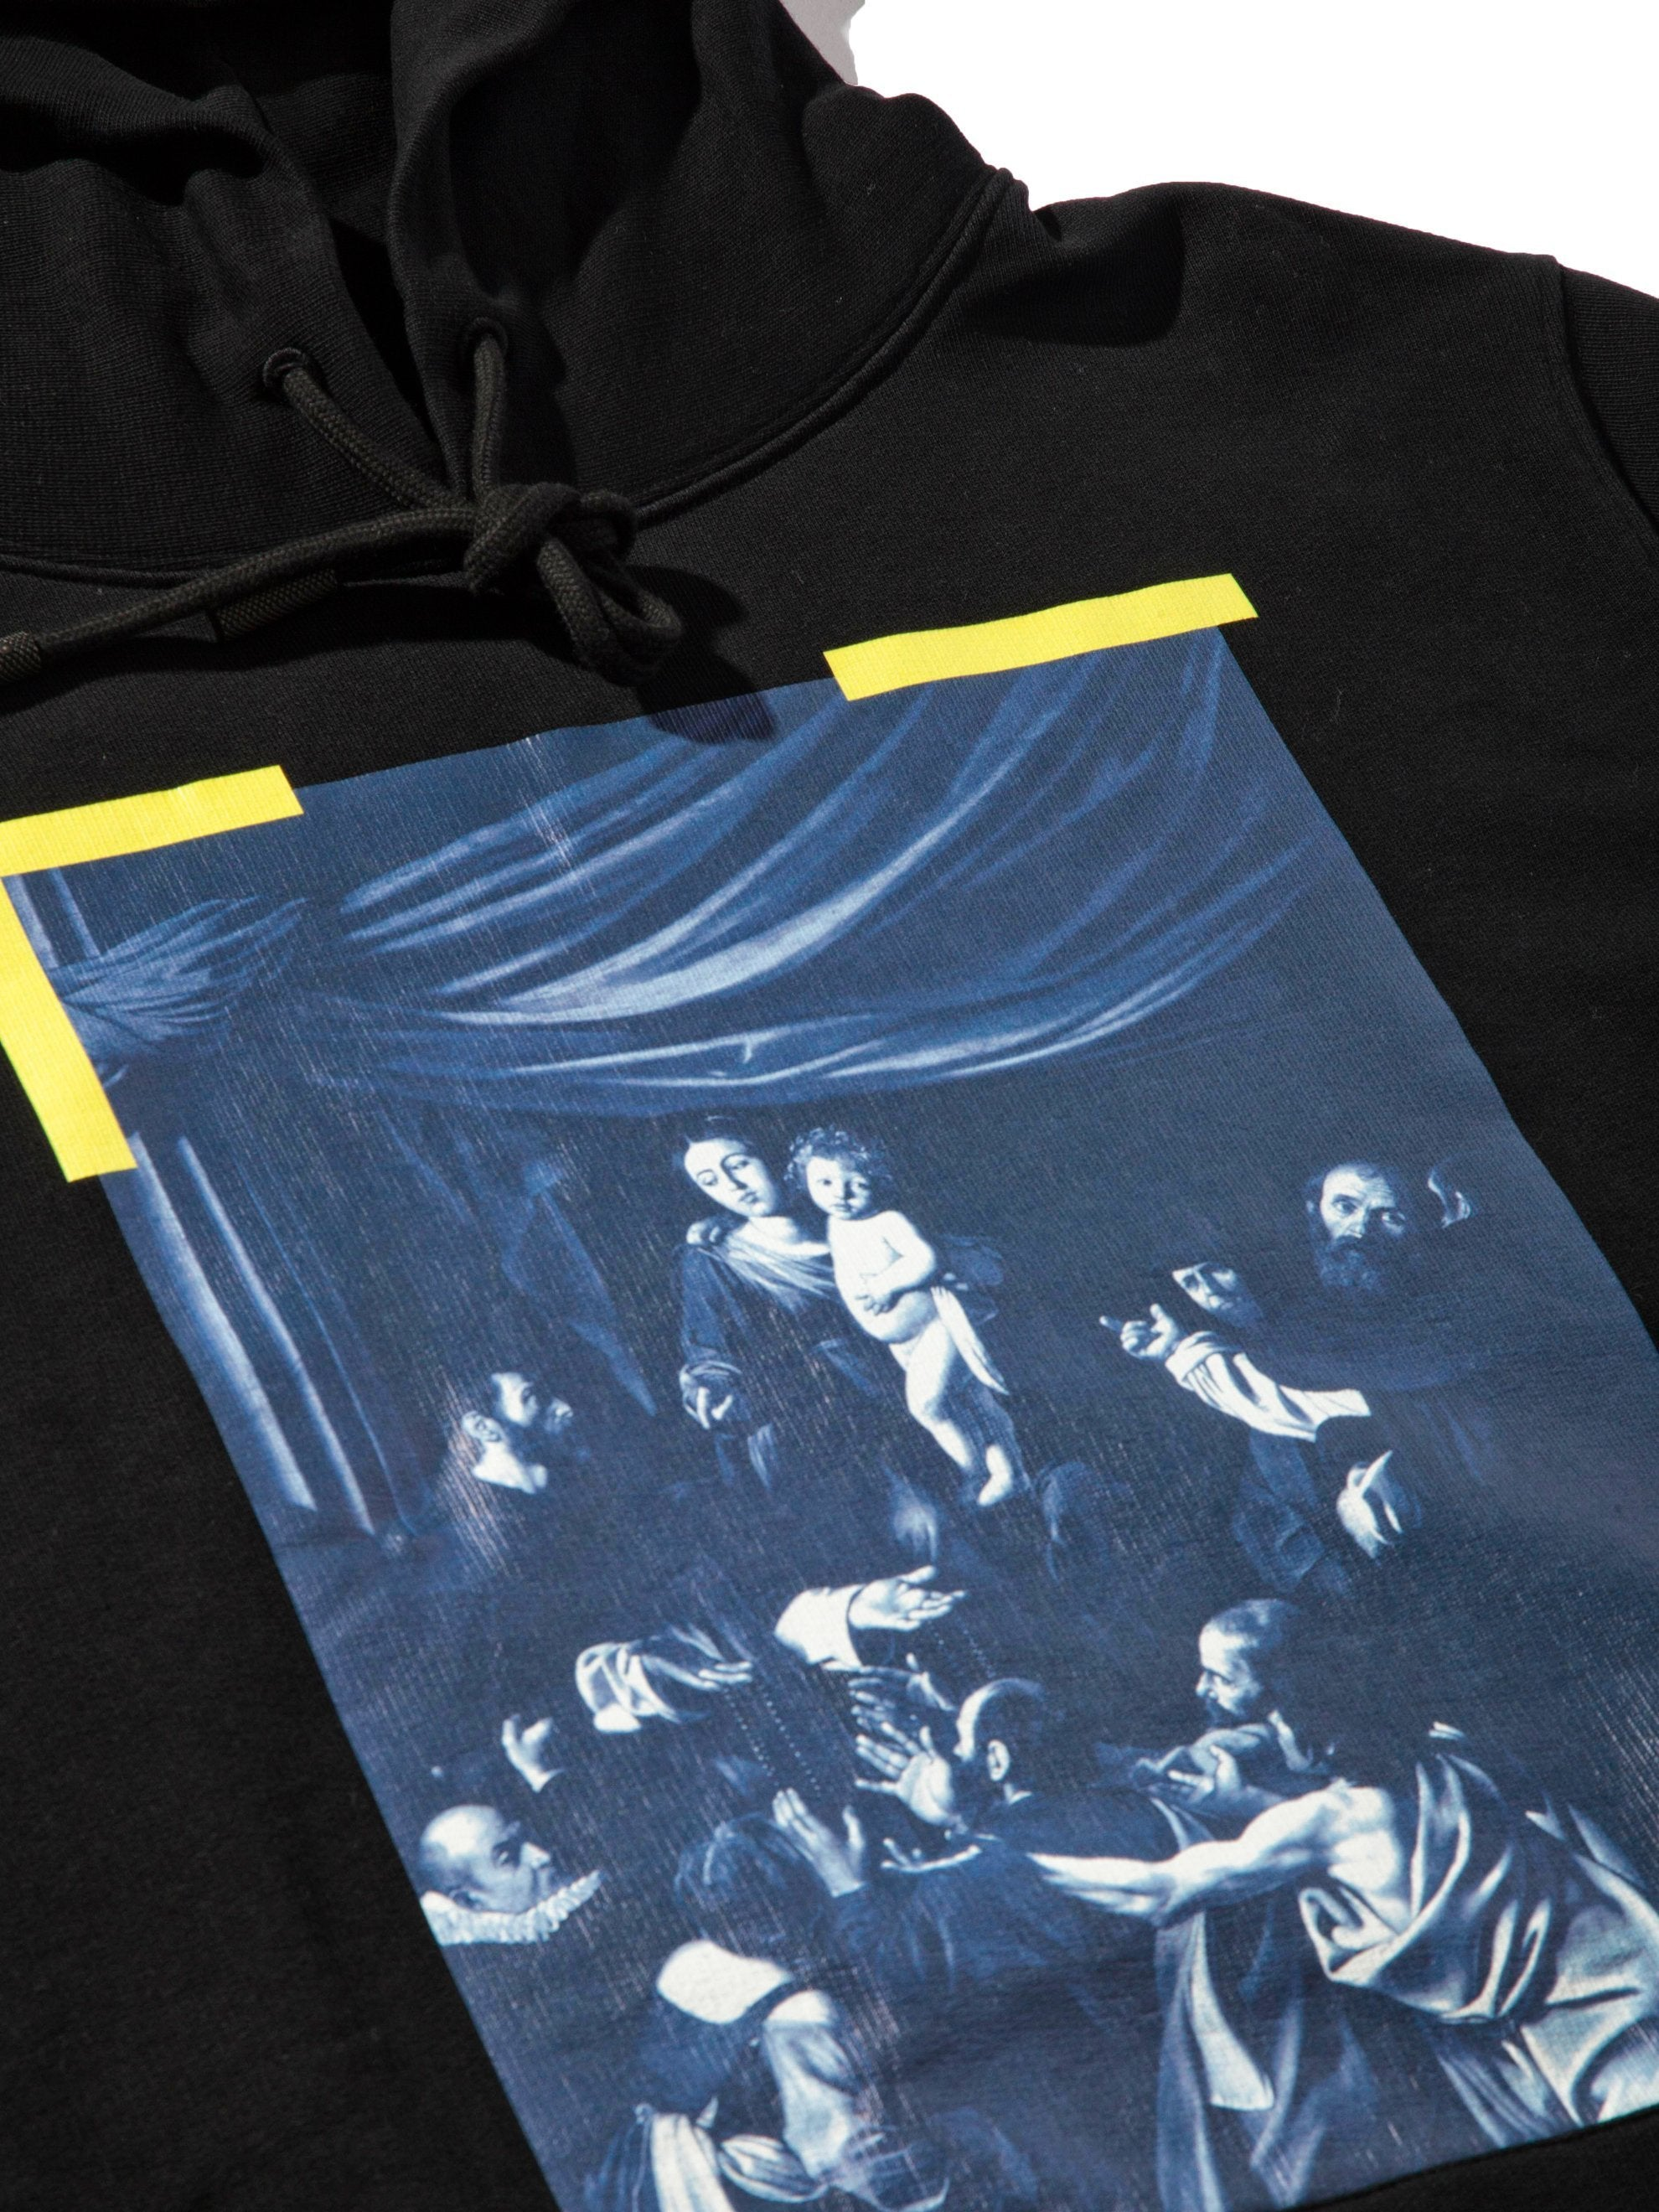 Black Diagonal Caravaggio Hooded Sweatshirt 7